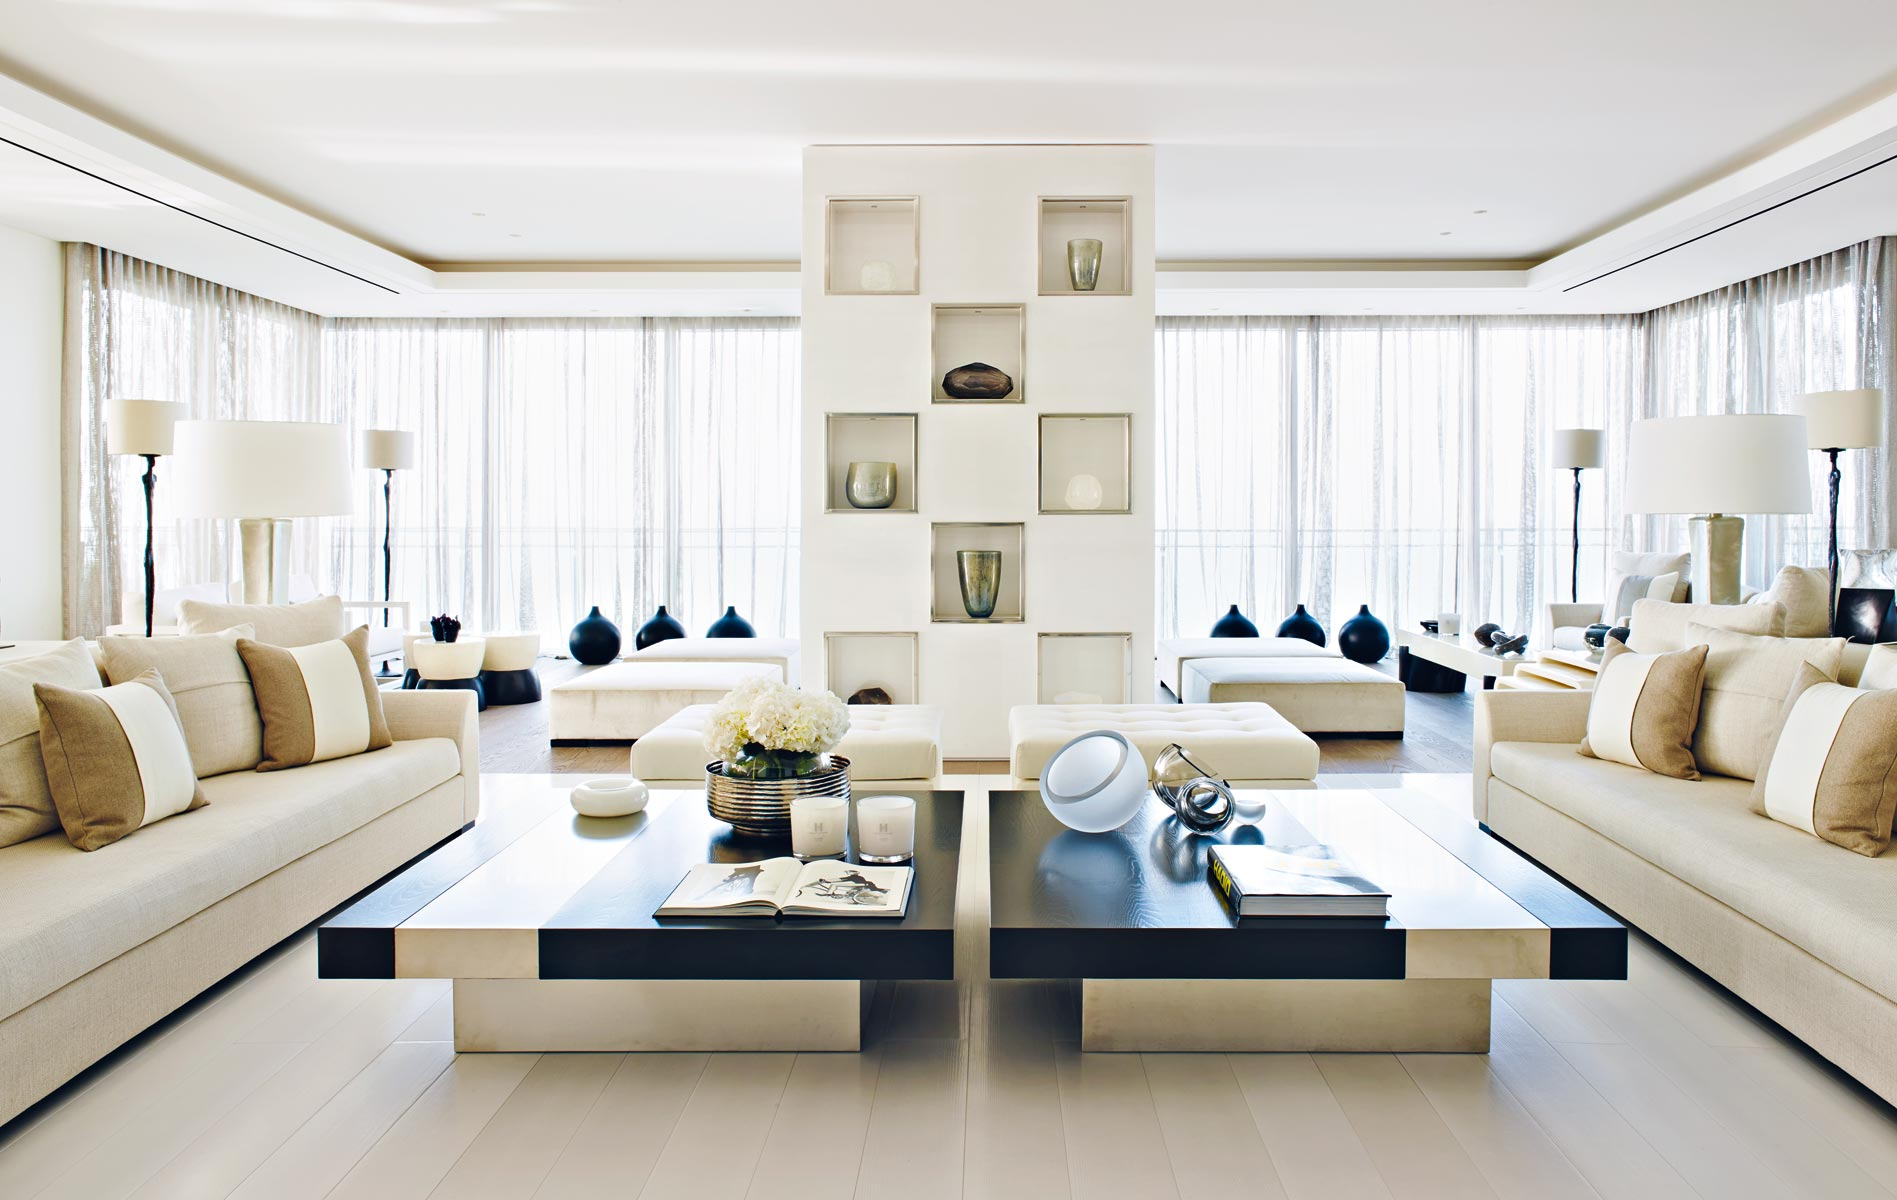 Top 10 kelly hoppen design ideas for New home decor ideas 2015